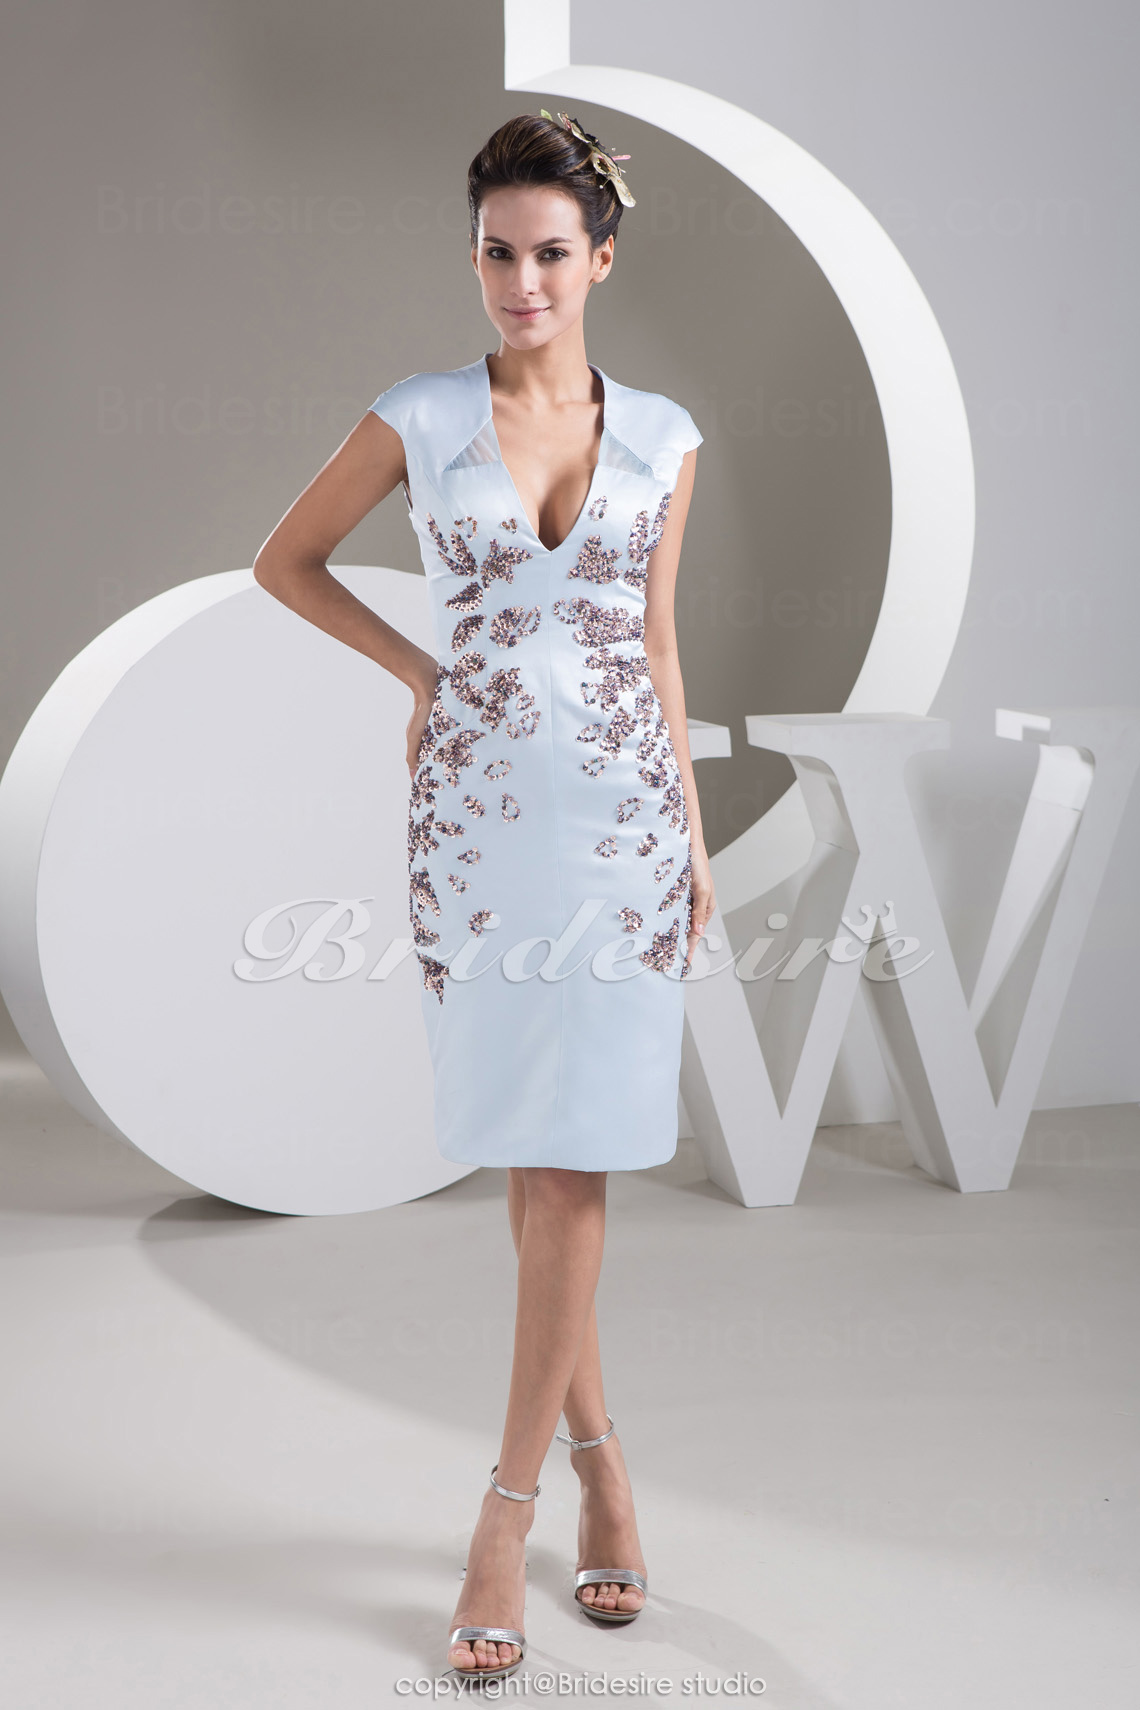 Sheath/Column V-neck Short/Mini Short Sleeve Stretch Satin Dress